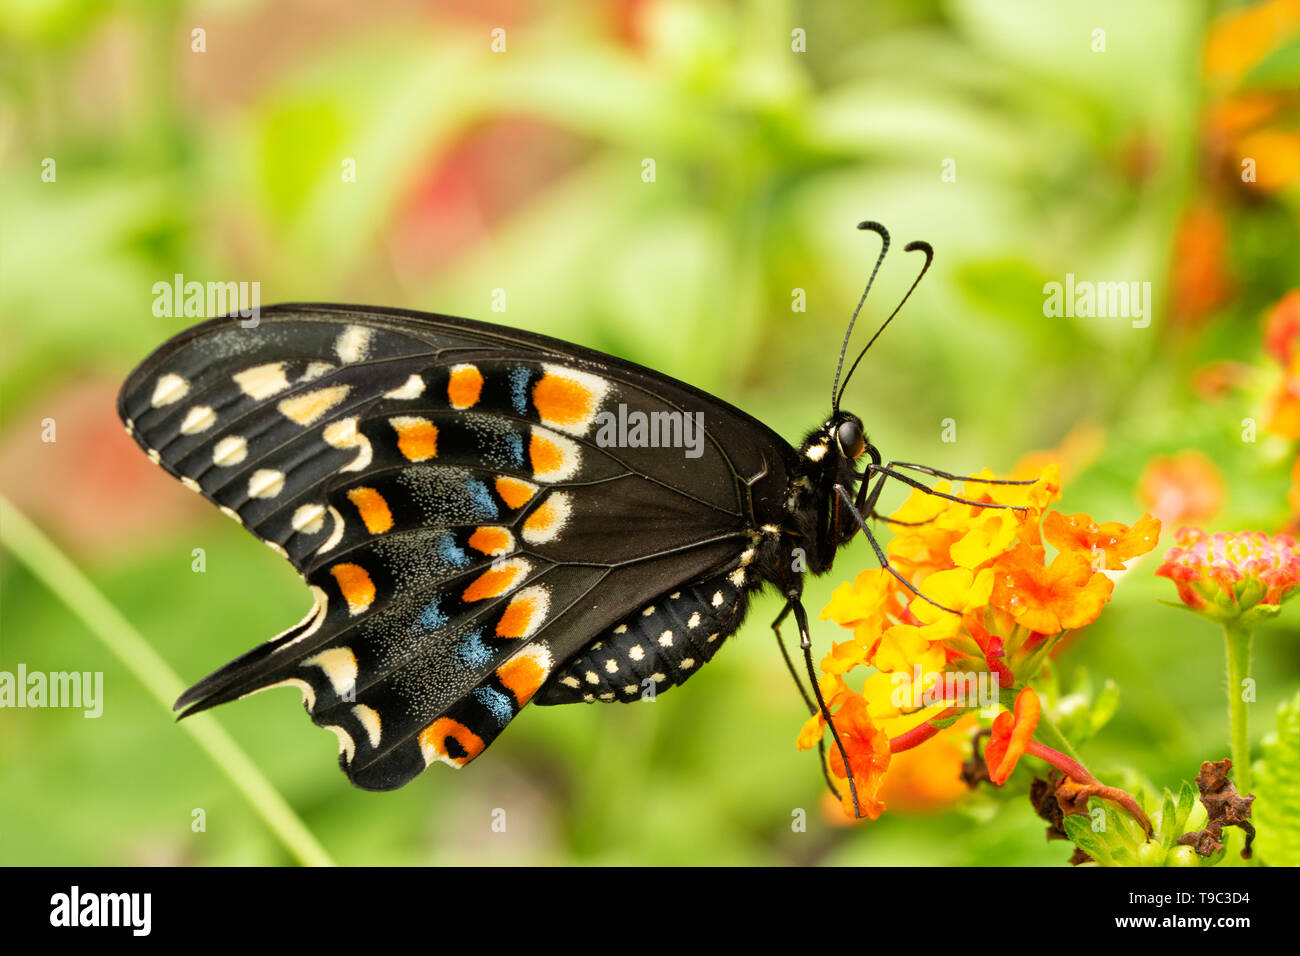 Eastern Black Swallowtail butterfly feeding on a yellow and orange lantana flower in summer garden, ventral view - Stock Image